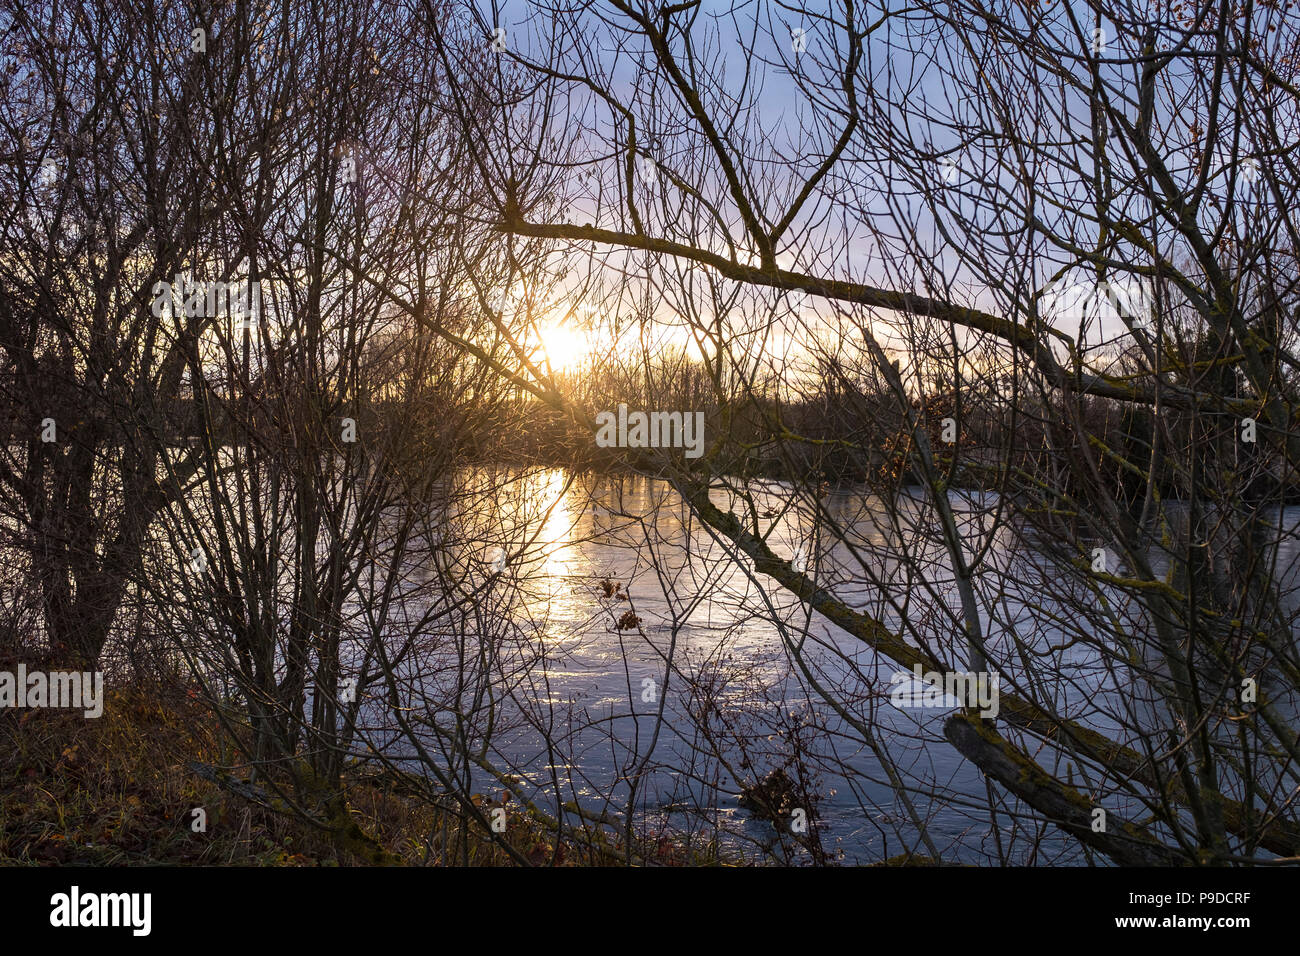 Setting sun, bare trees, Ill river, wintertime, Alsace, France, Europe, - Stock Image